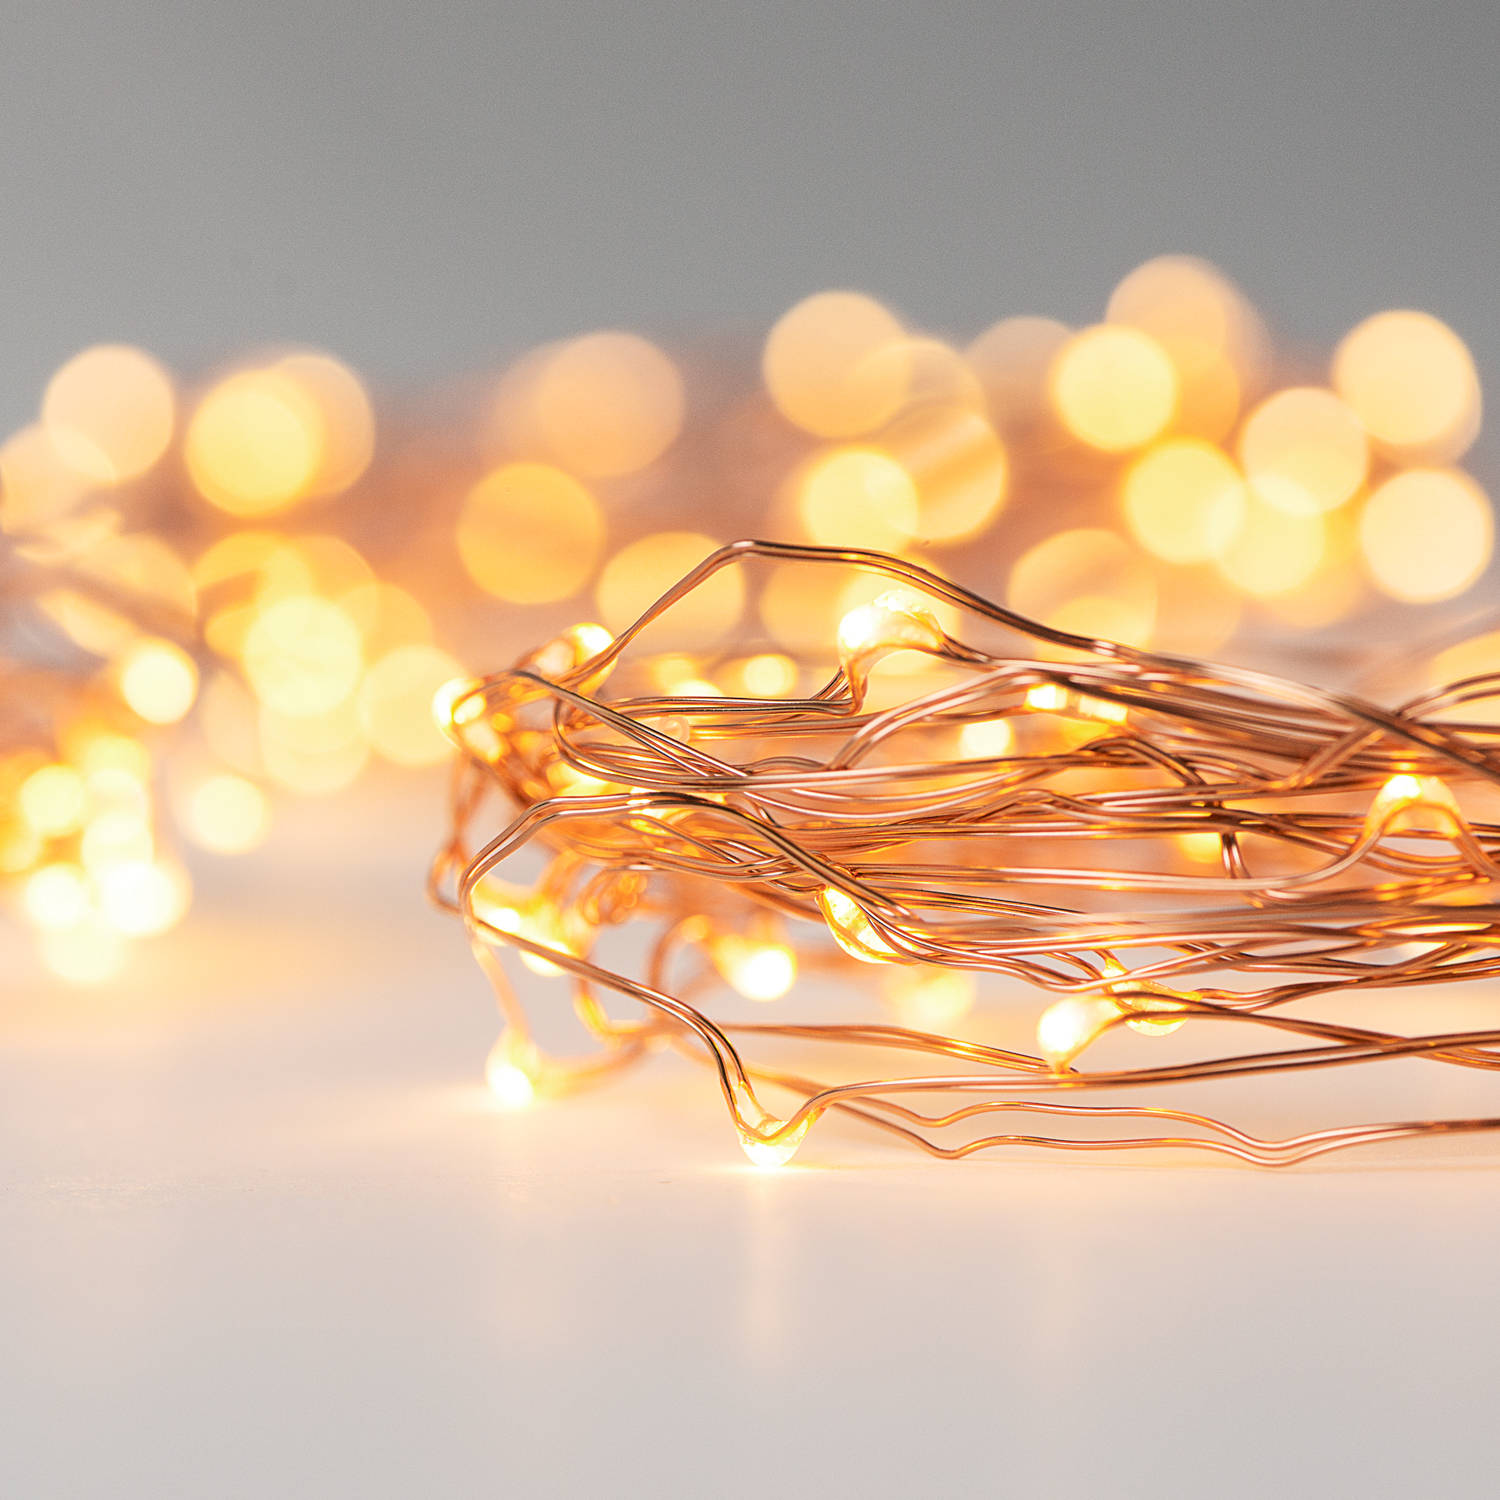 Vintage Led String Lights Merchsource : Lights.com String Lights Fairy Lights Warm White 50 LED Starry Series Copper Wire Battery ...